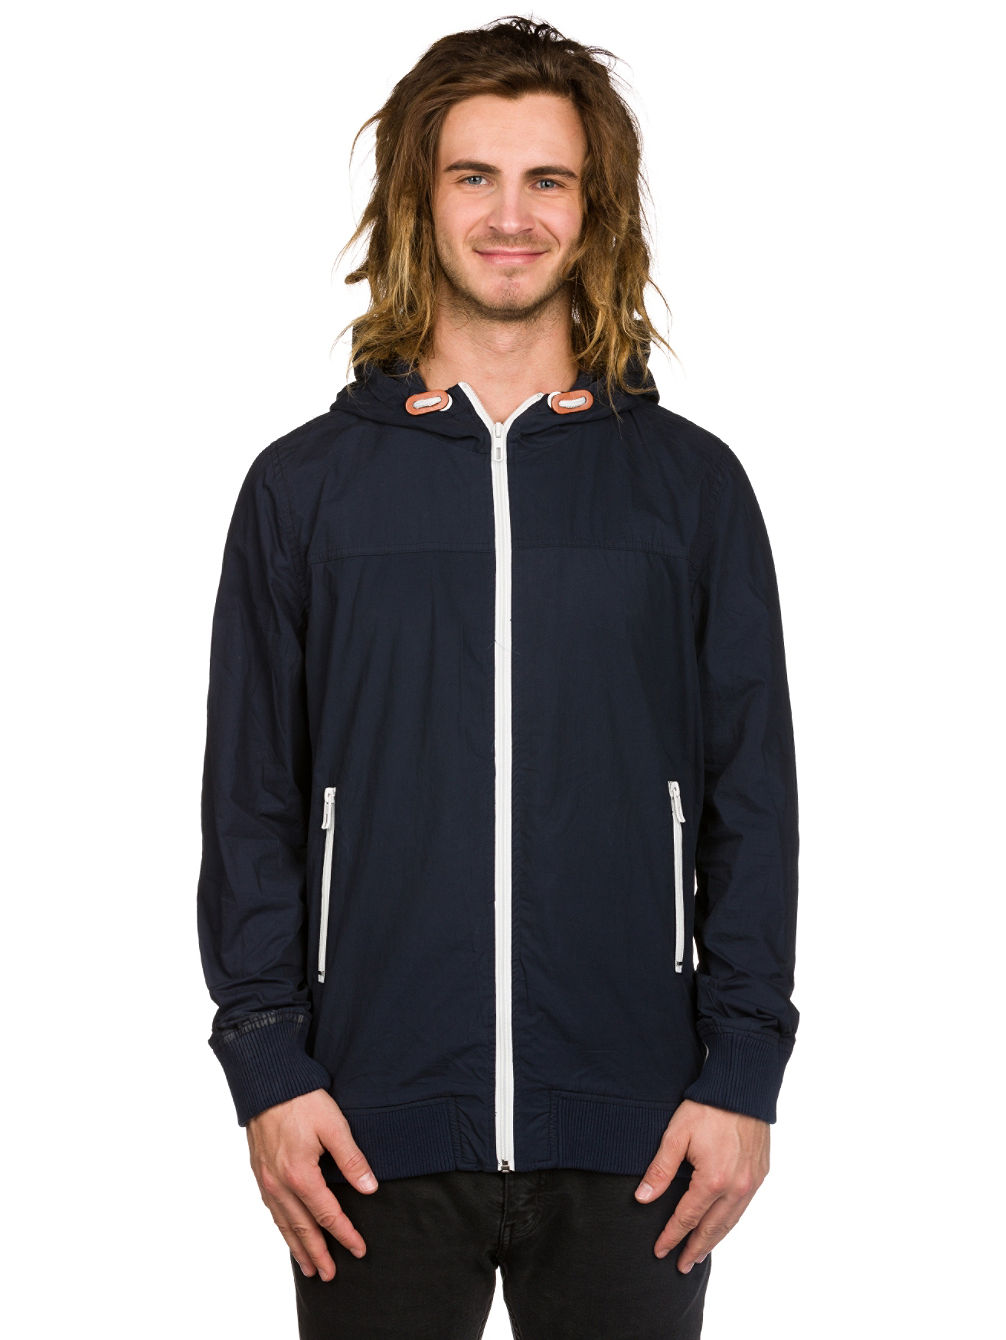 Northwest Breeze Jacket